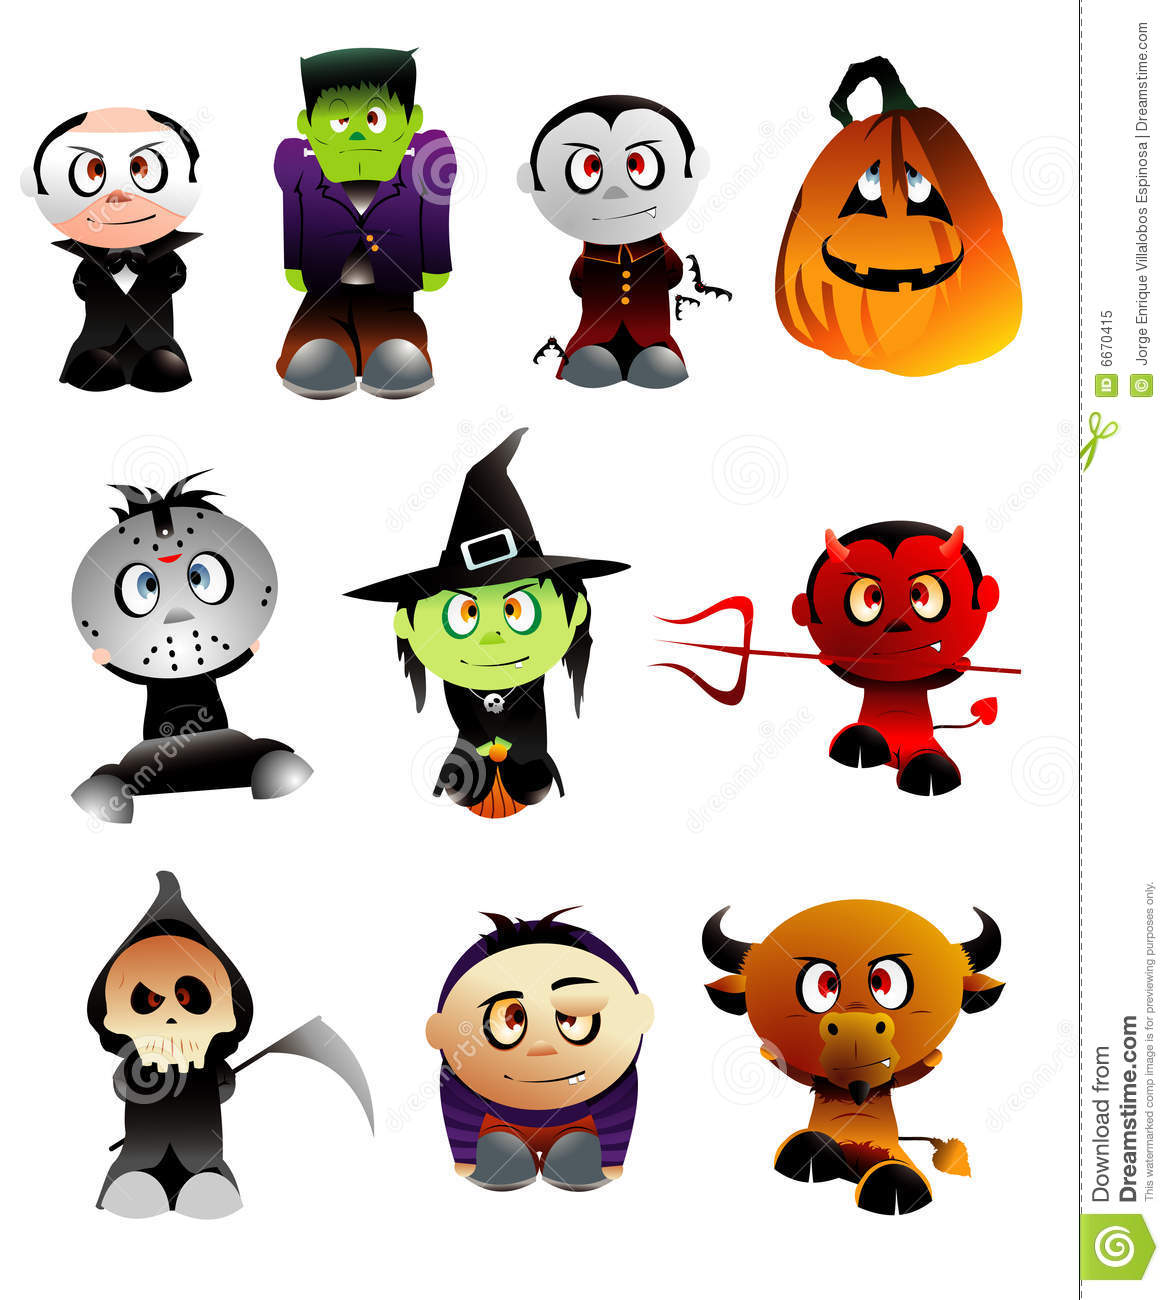 Halloween Vector Characters Royalty Free Stock Photo - Image: 6670415